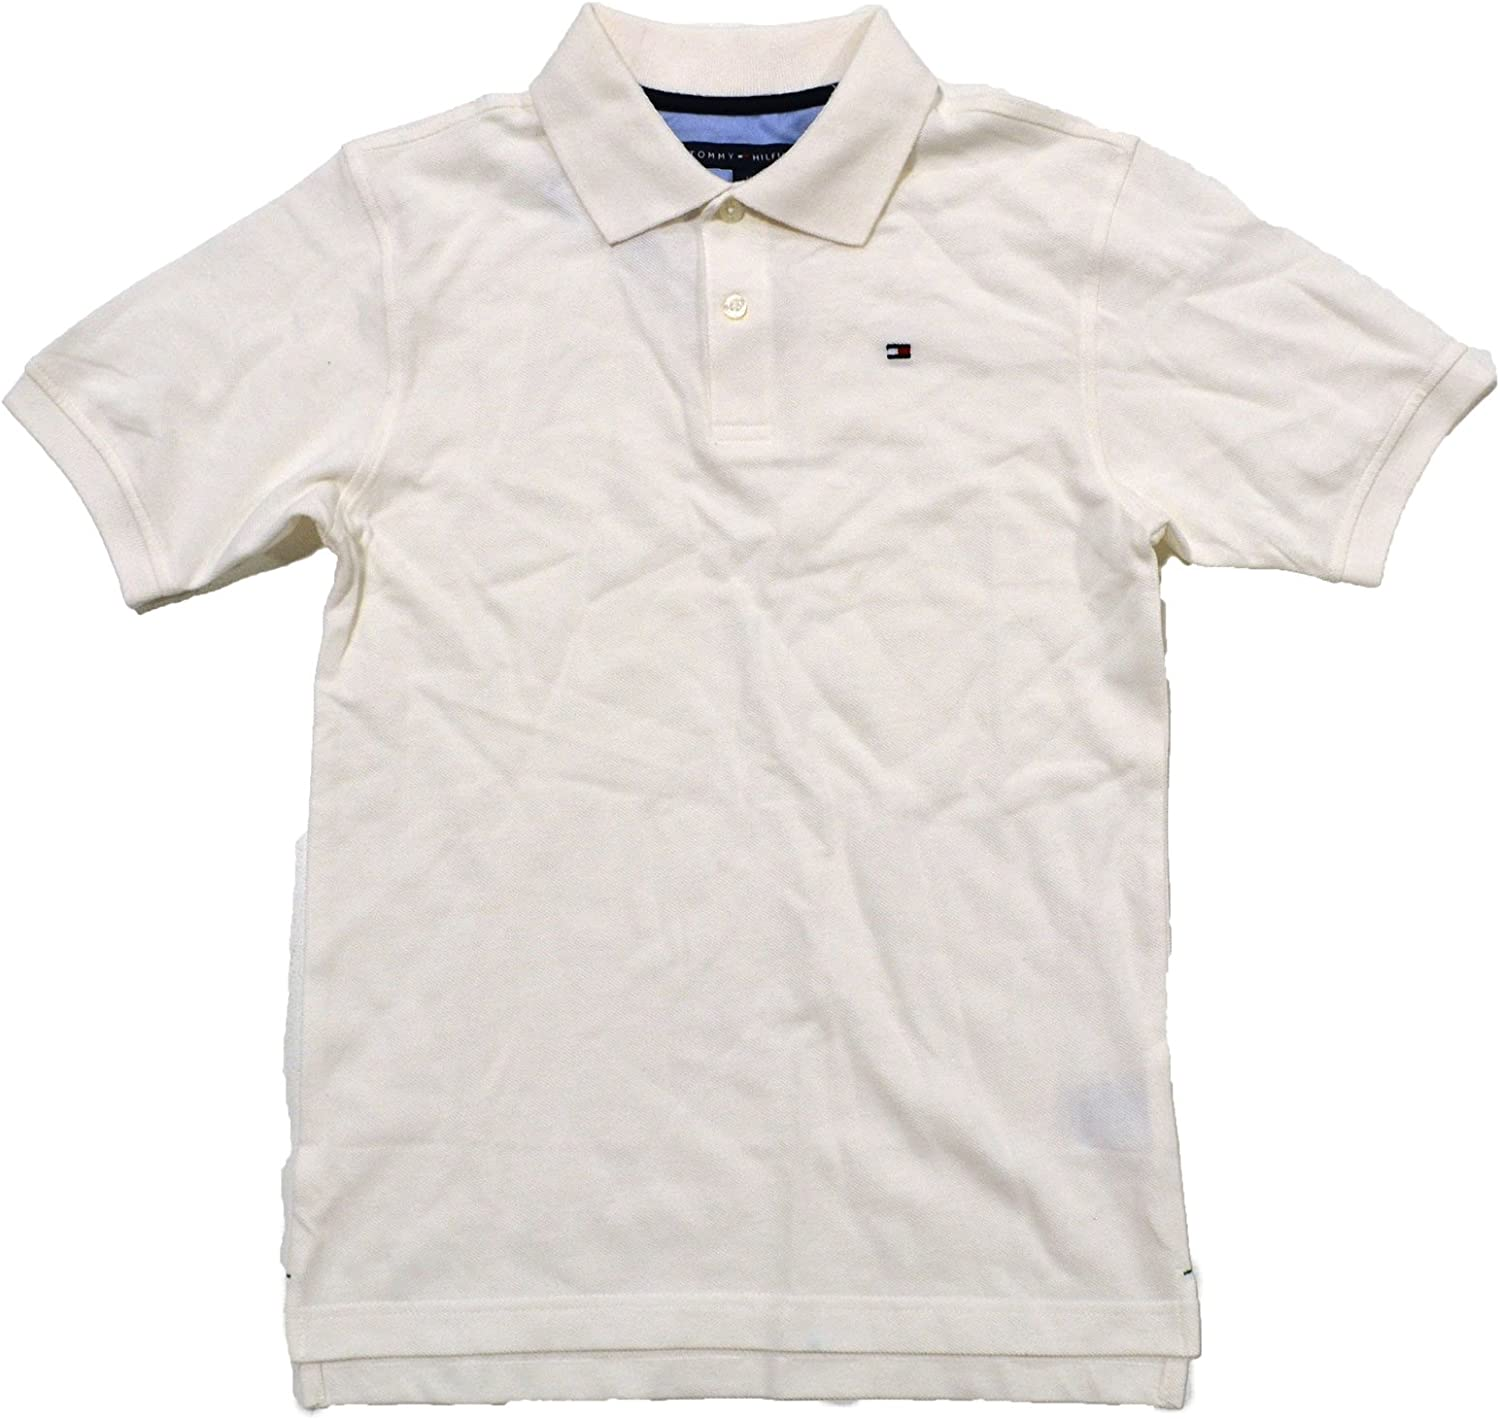 Tommy Hilfiger Polo Shirt Men/'s Classic Fit Mesh Top White XLarge XL